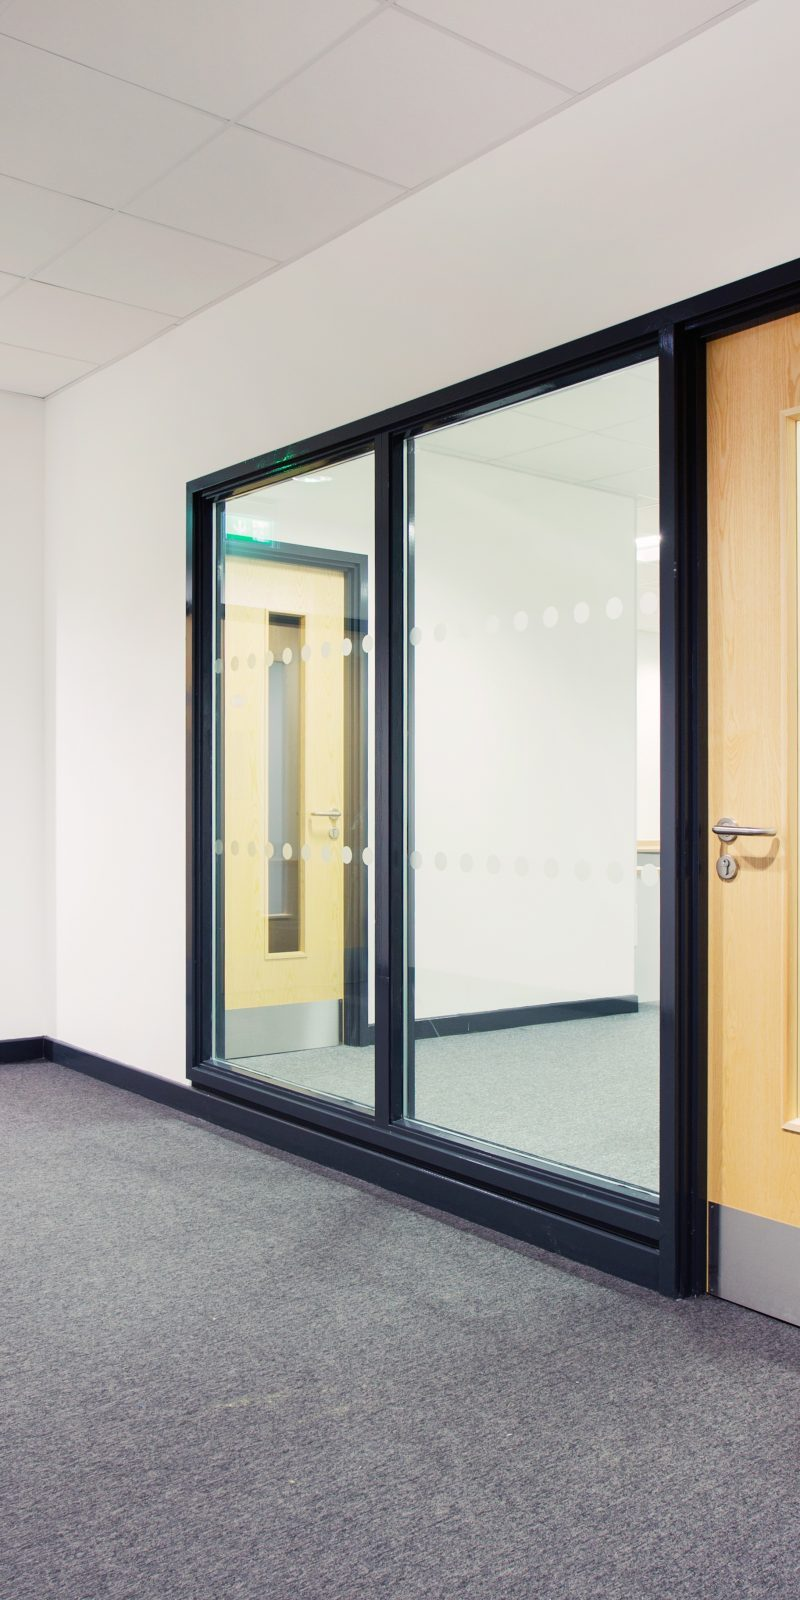 Ahmarra launch the 'Mercantile Range' – fire rated doorsets for commercial projects